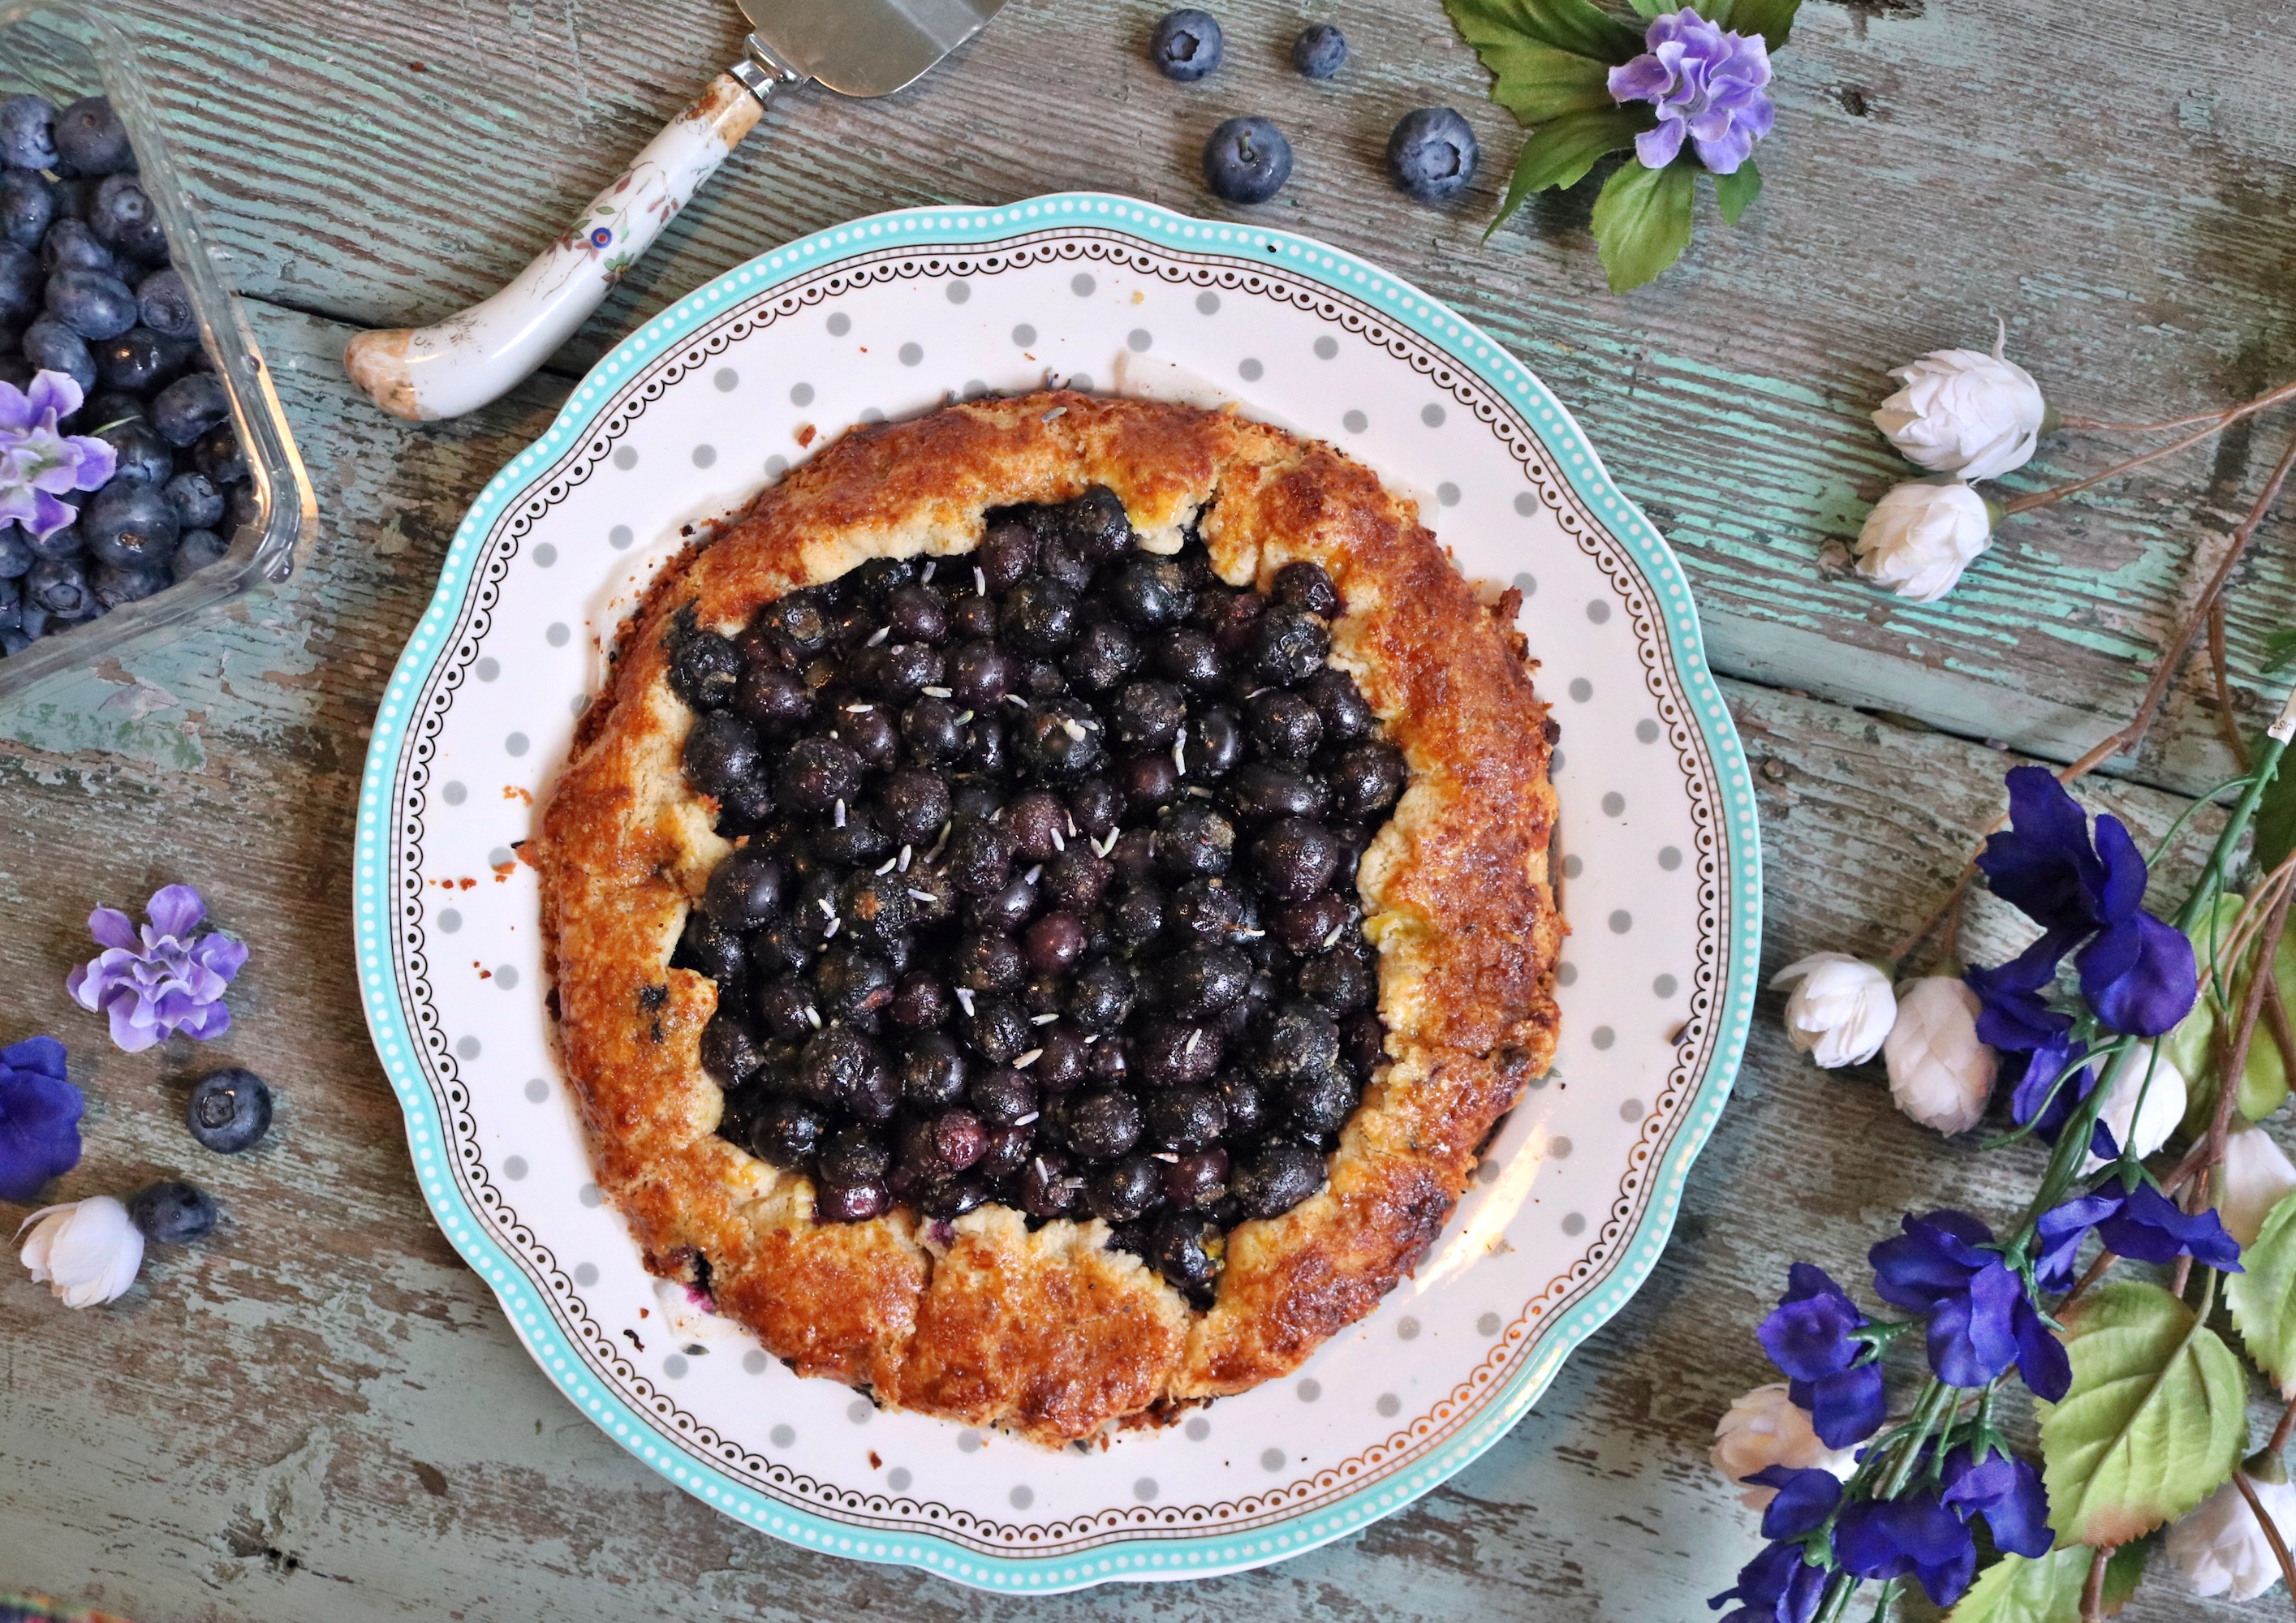 Blueberry, Lemon, and Lavender Galette